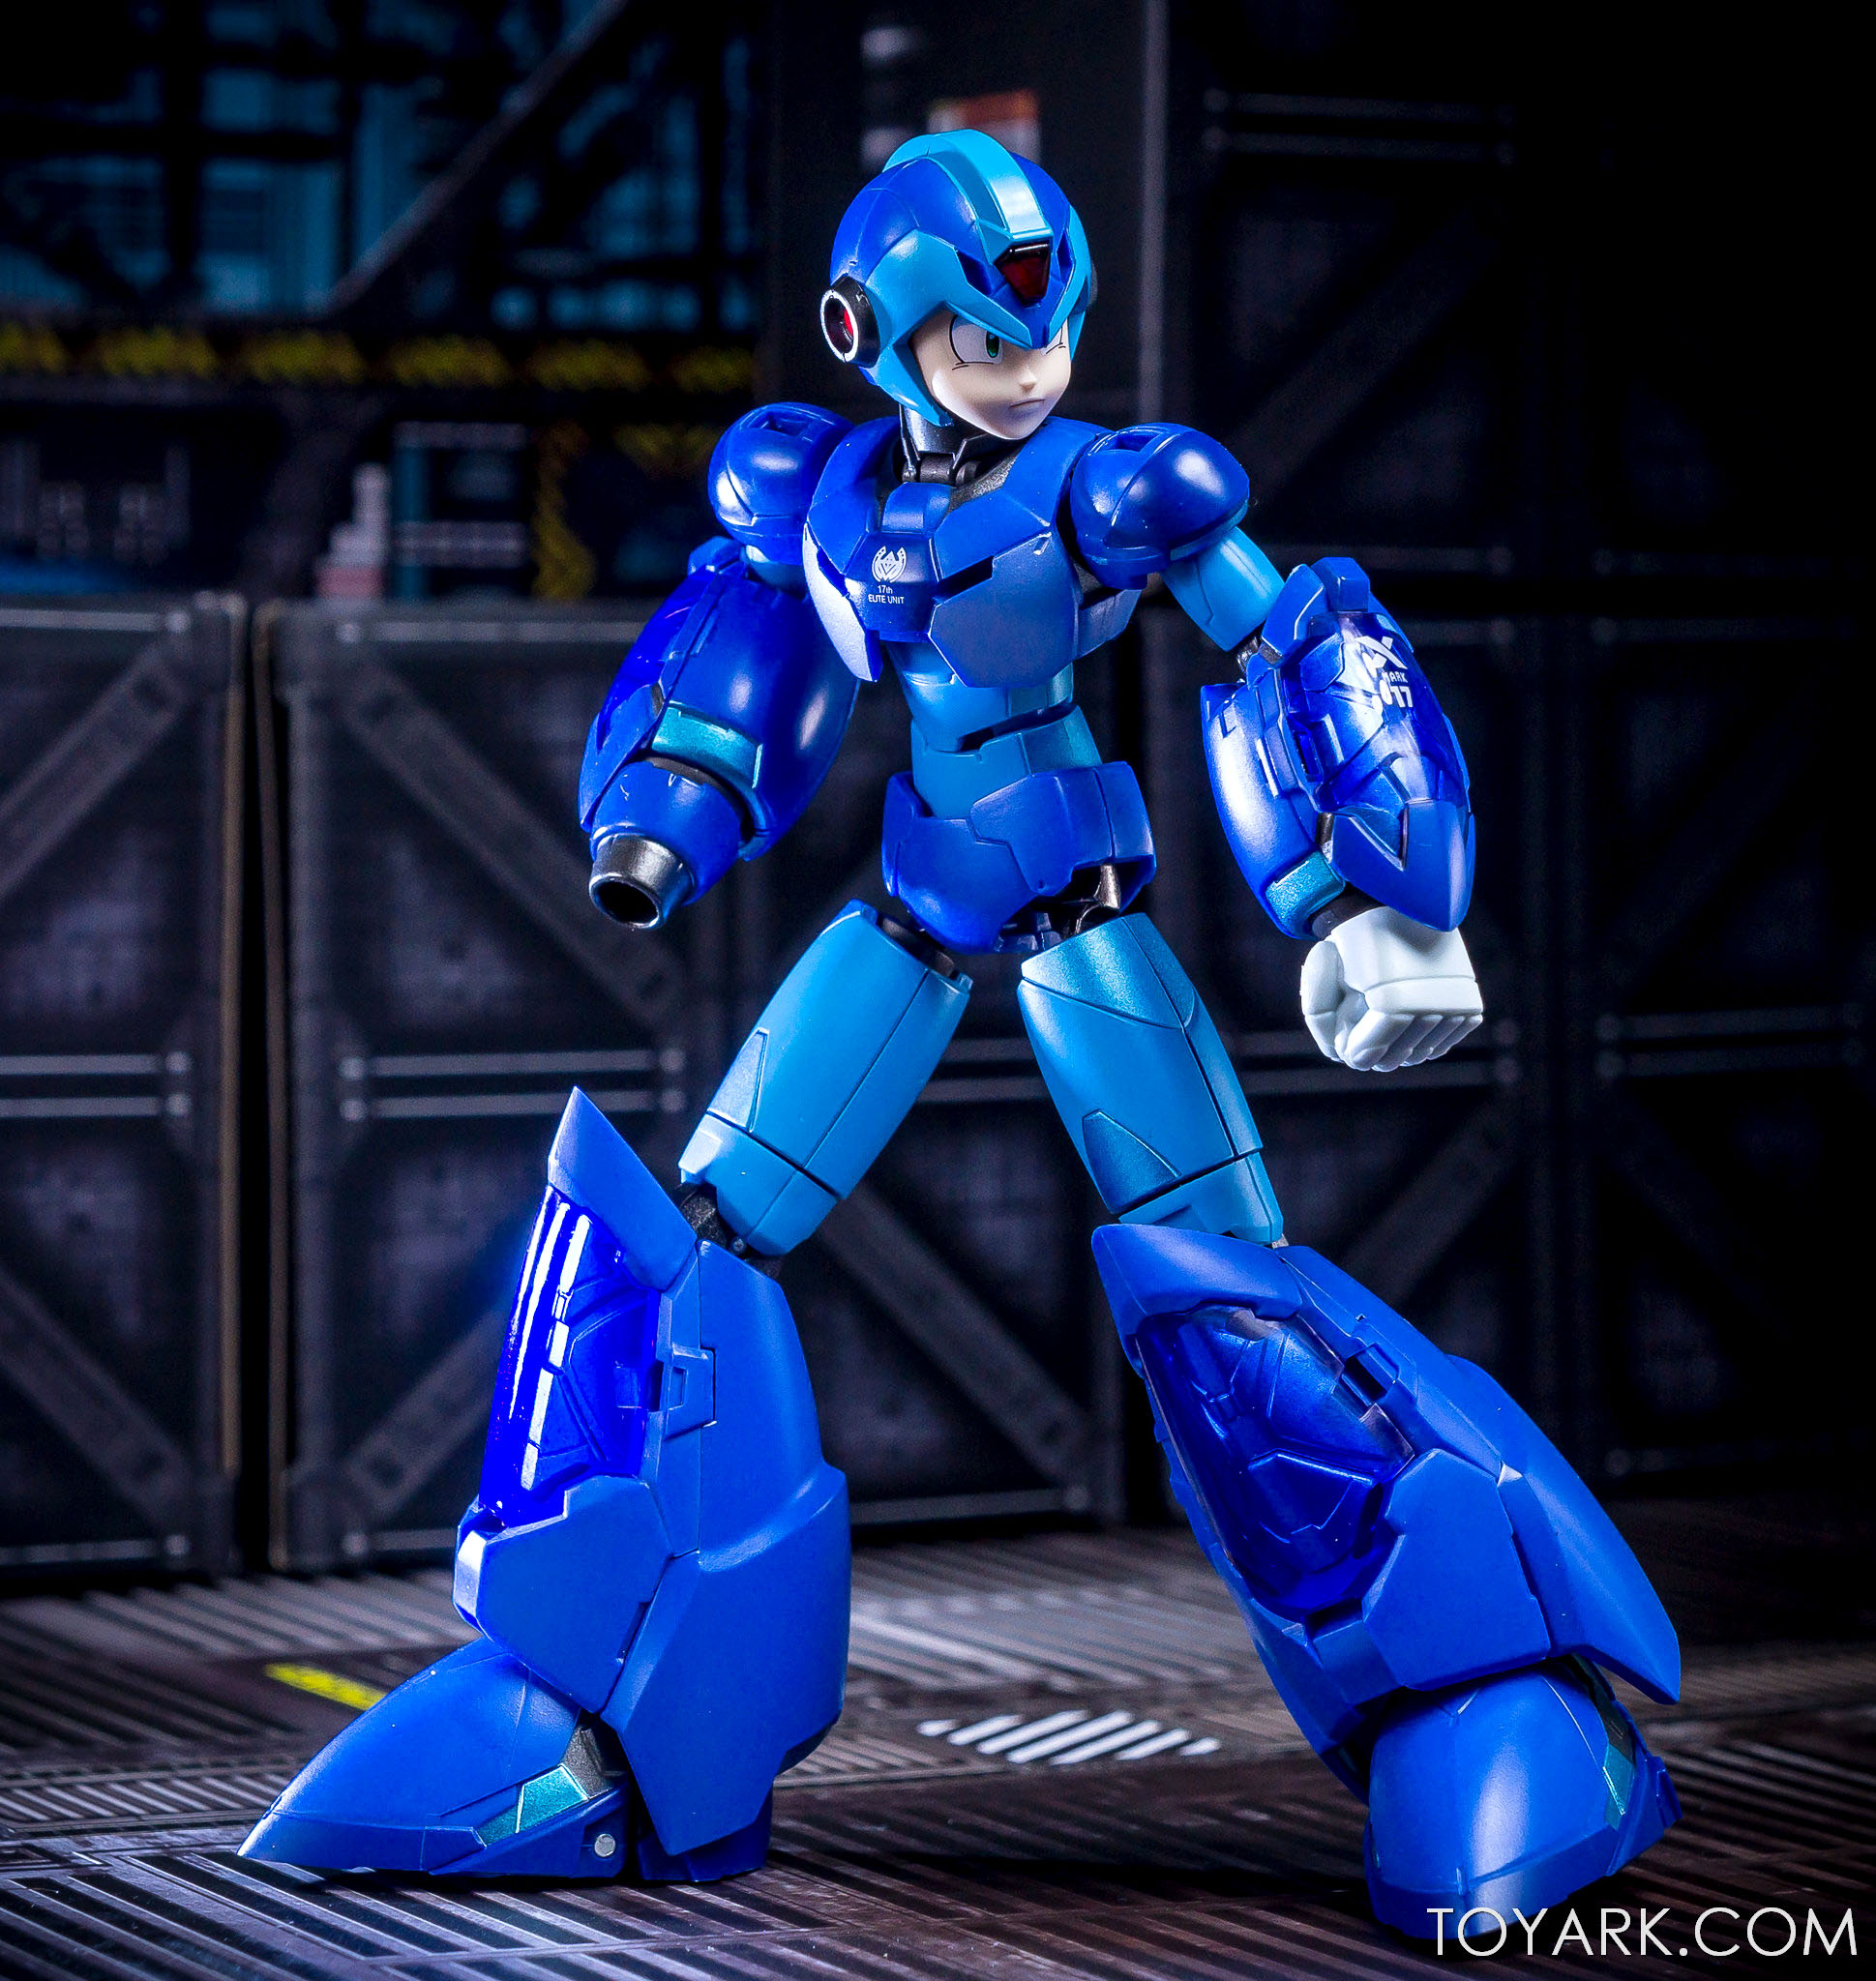 http://news.toyark.com/wp-content/uploads/sites/4/2018/01/Mega-Man-X-Giga-Armor-00057.jpg